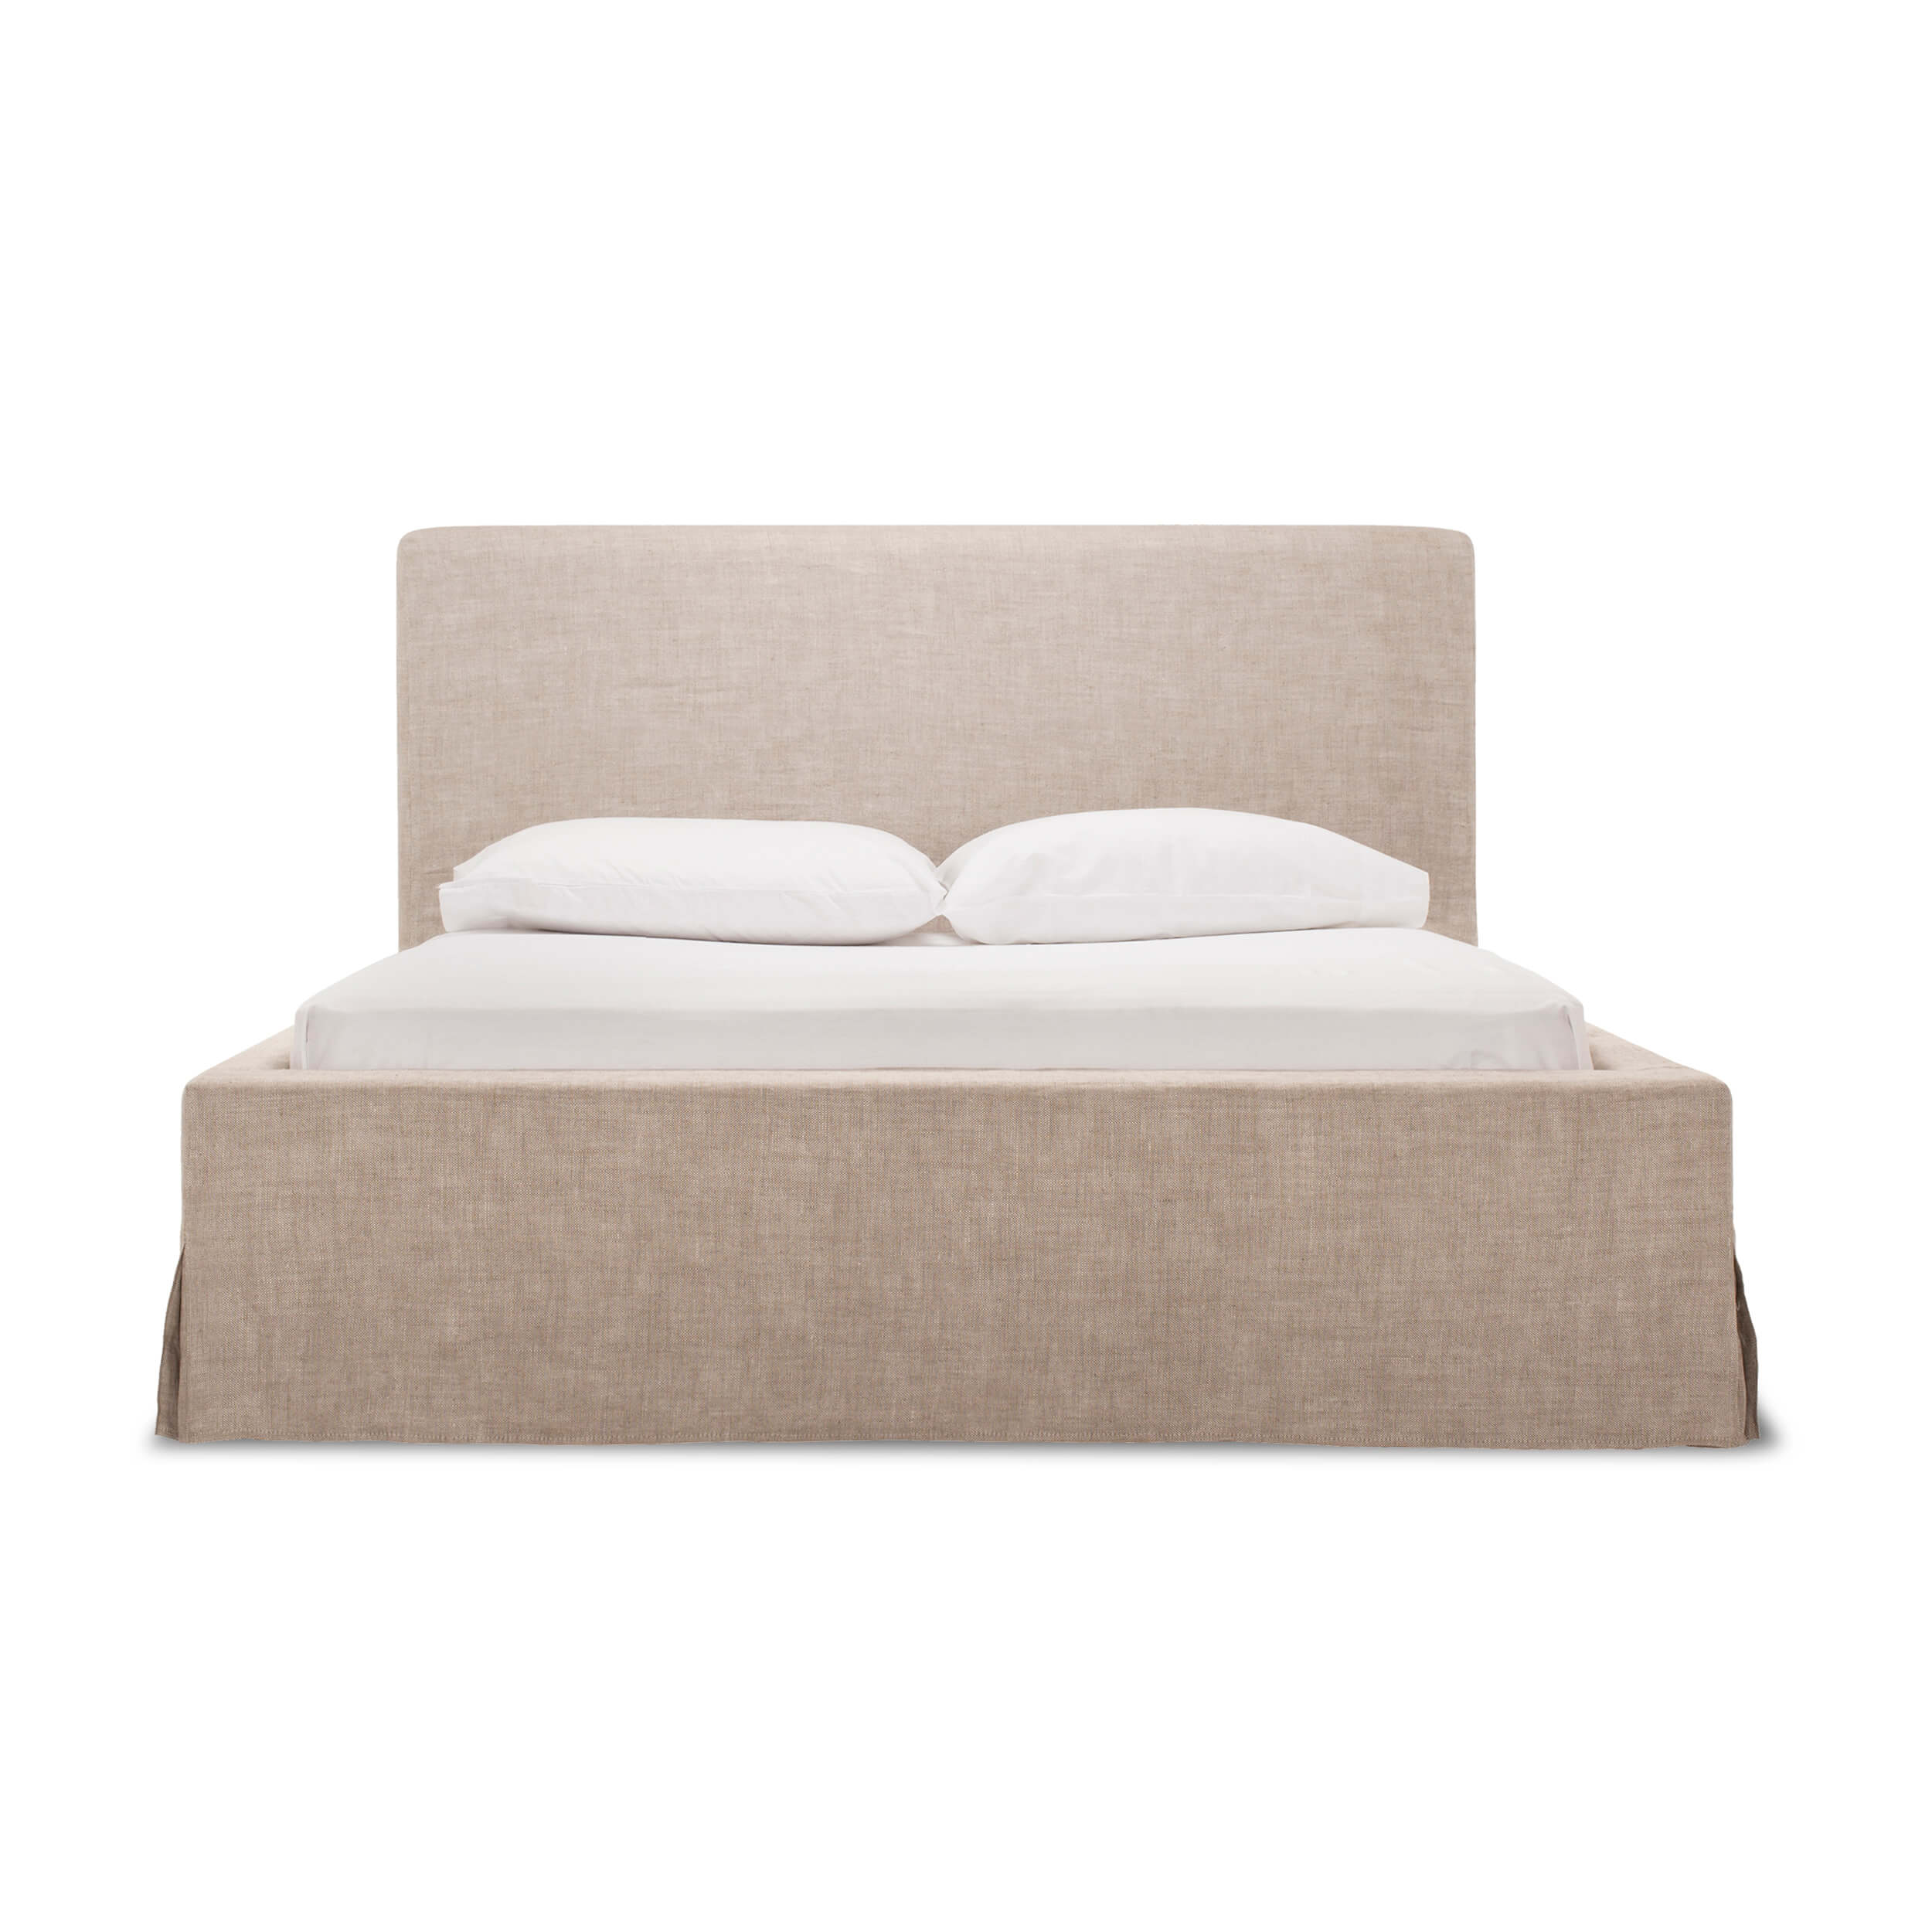 B2c Slipcover Bed Eq3